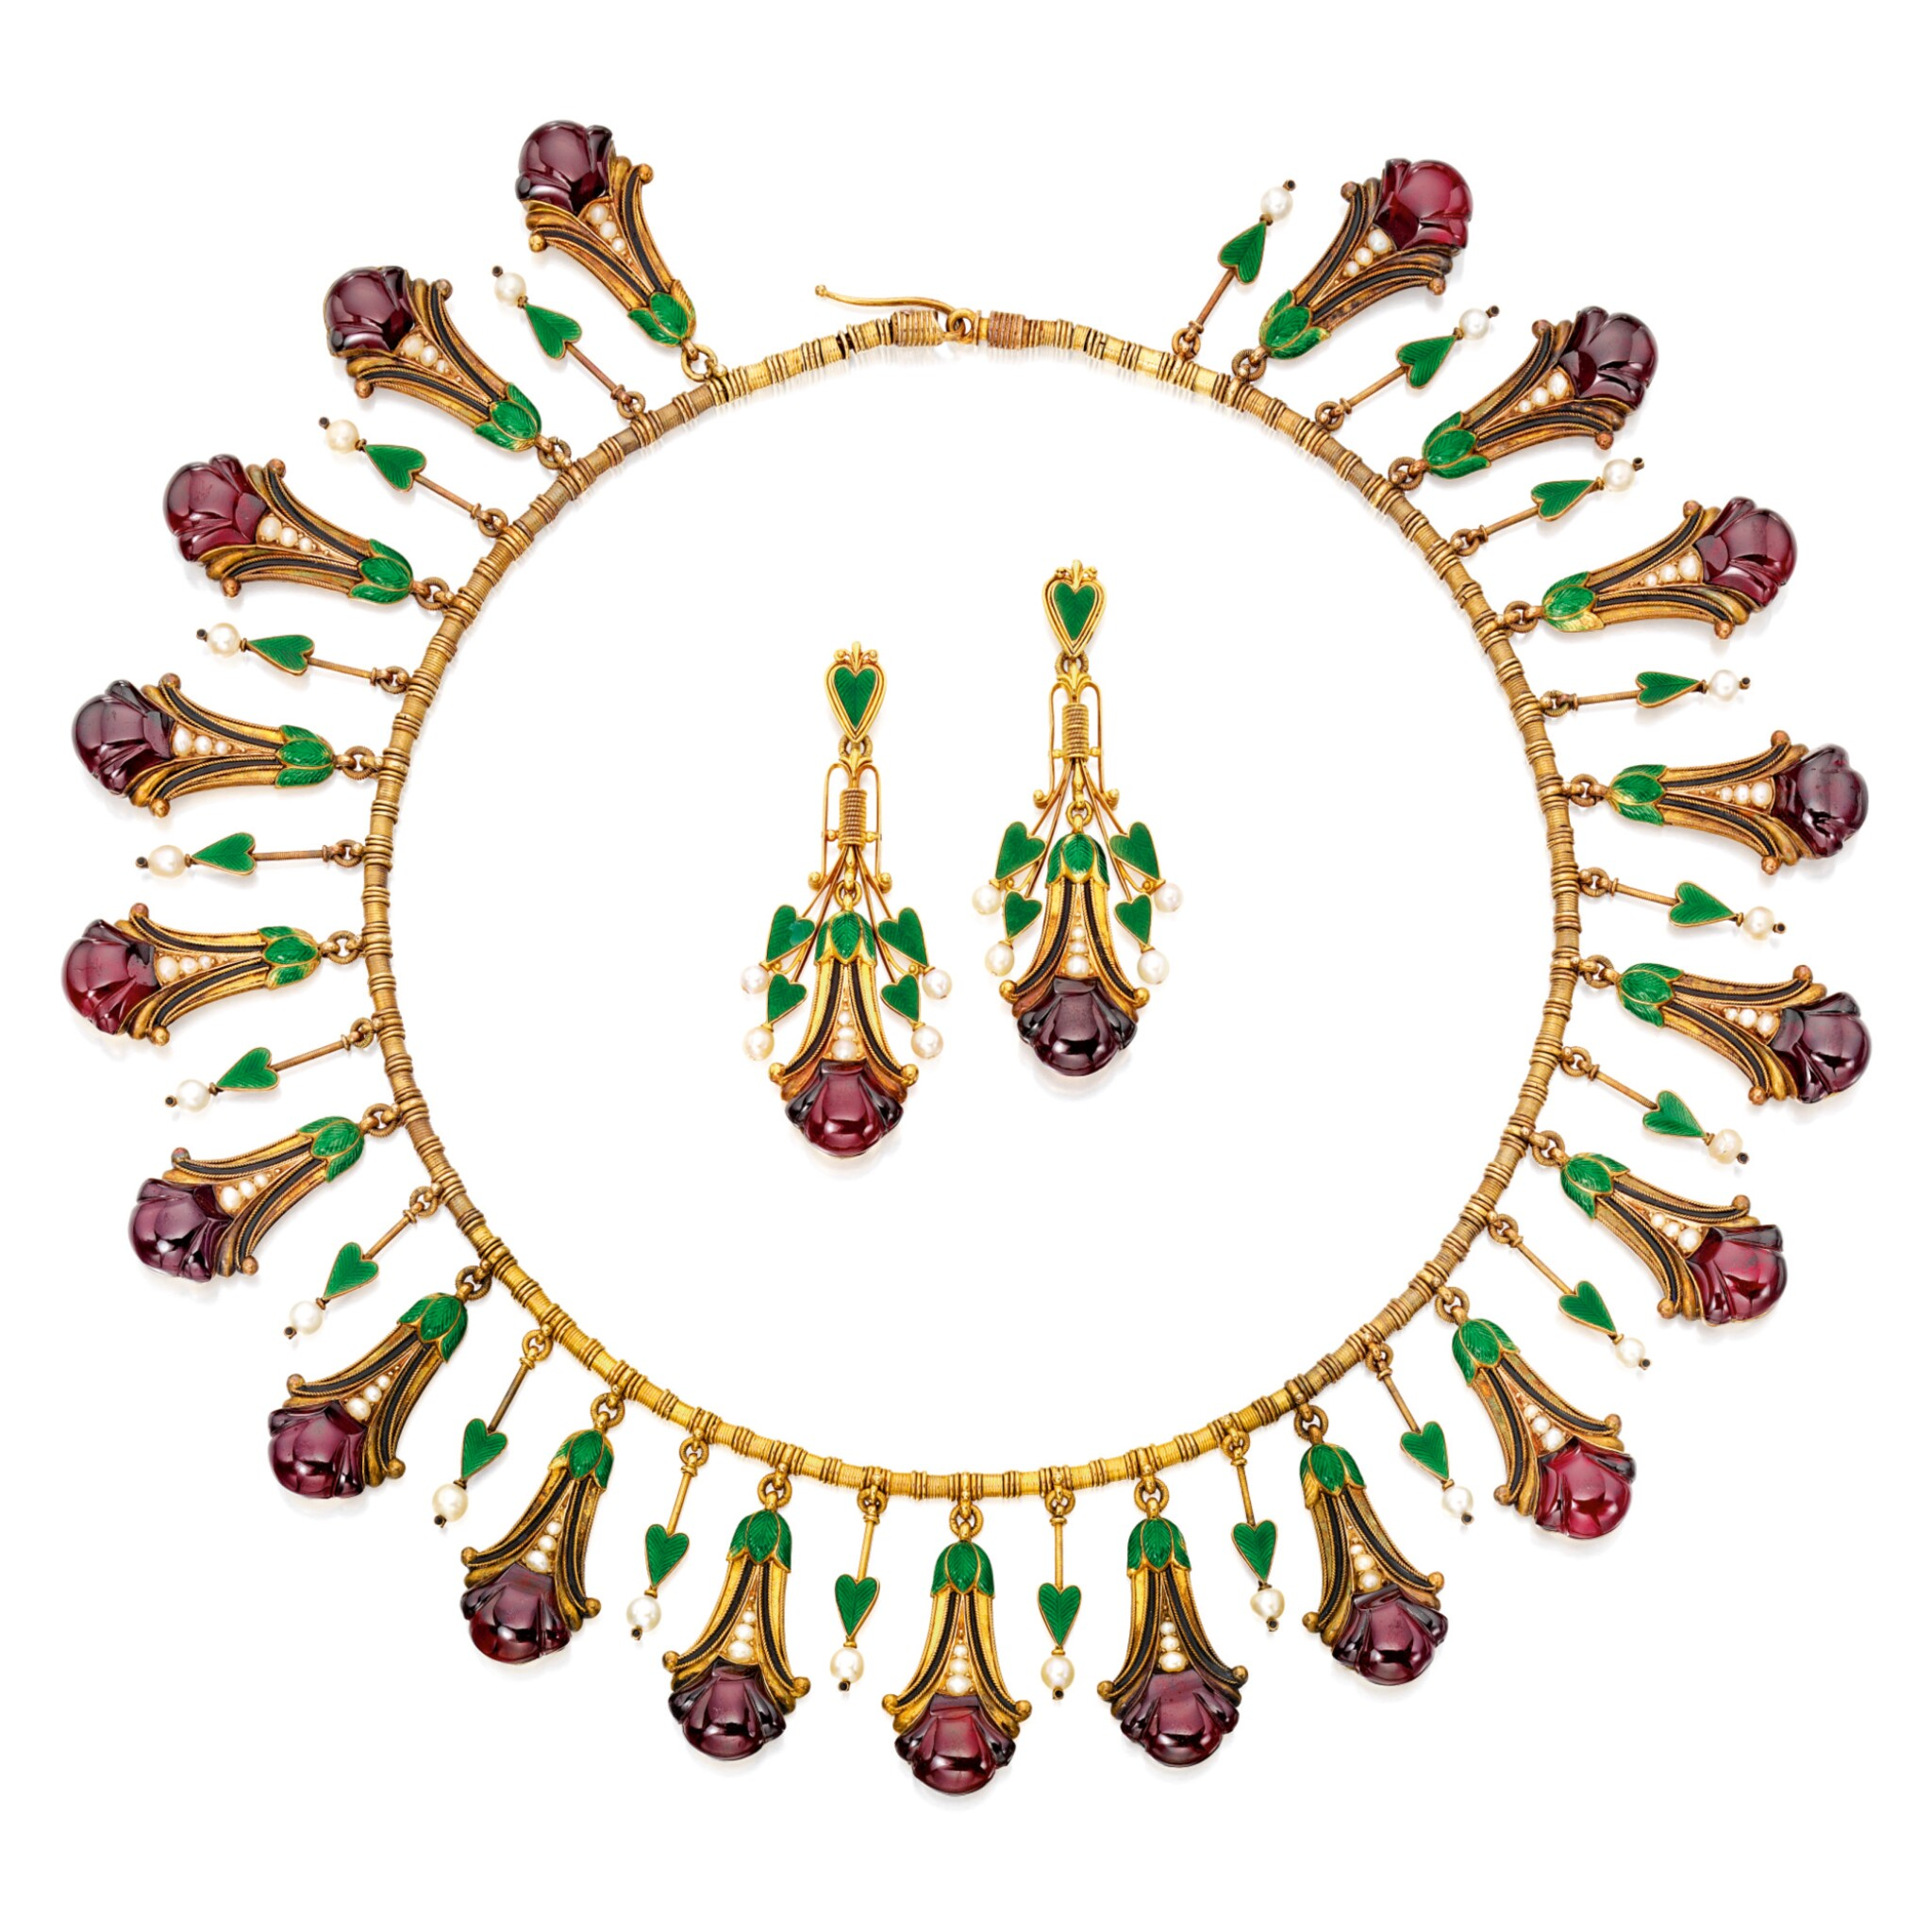 View 1 of Lot 586. GOLD, GARNET, SEED PEARL AND ENAMEL NECKLACE AND PAIR OF PENDANT-EARRINGS, CARLO GIULIANO | 黃金鑲翠榴石配小顆珍珠及琺瑯彩項鏈及吊耳環一對,Carlo Giuliano.